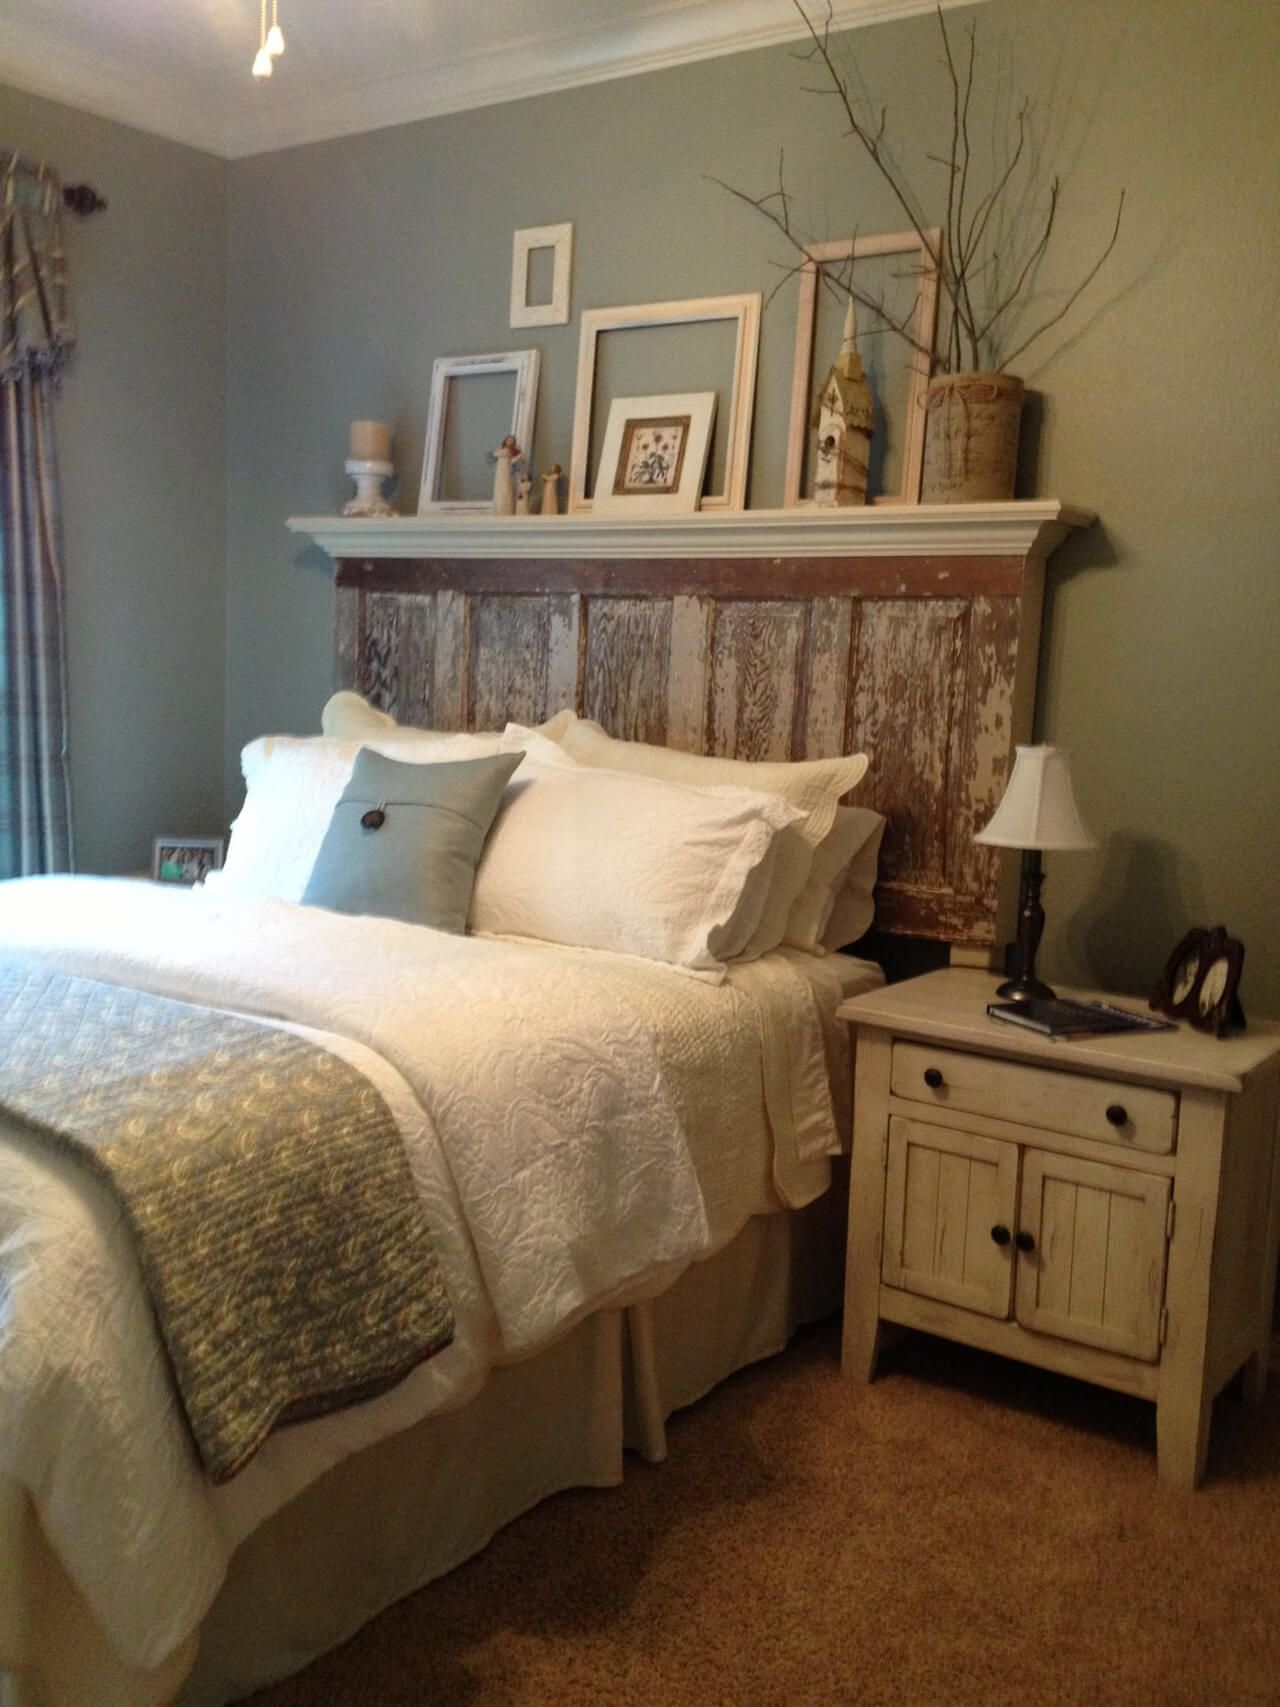 Master bedroom headboard ideas  Interior Decorating Advice For The Decorating Challenged  Apartment